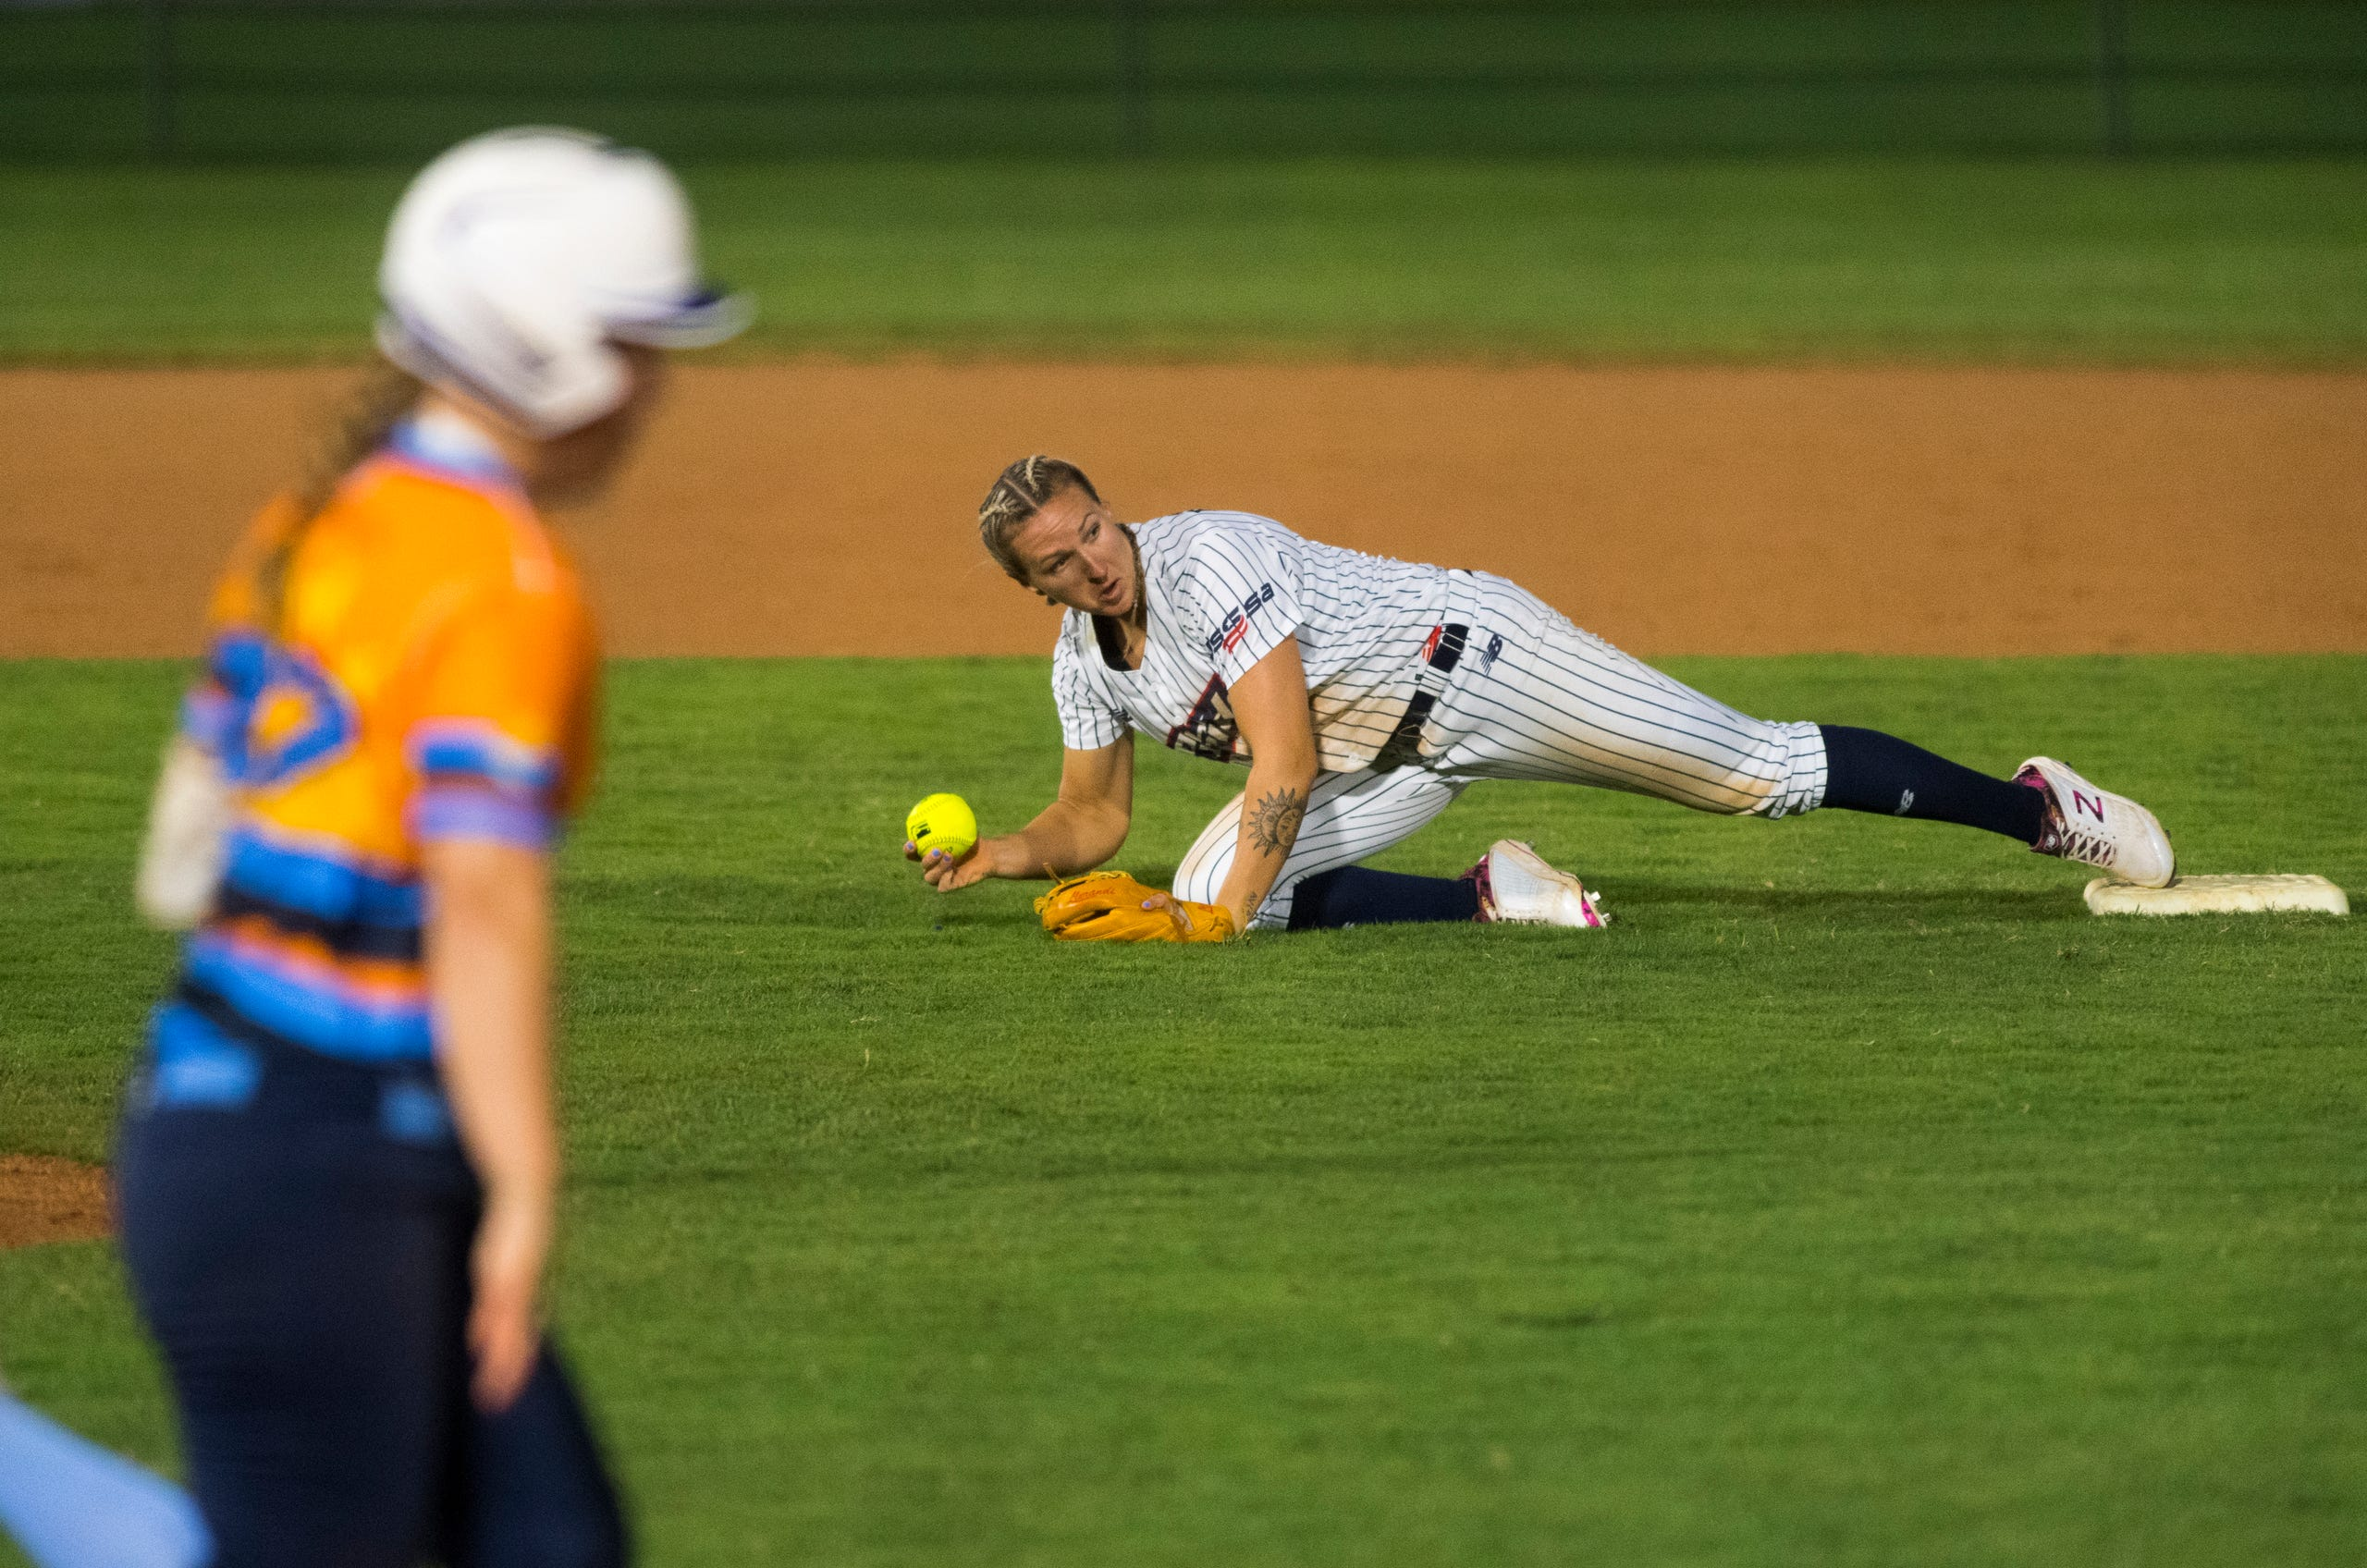 USSSA Pride's Shelby Pendley (2) fields a grounder at second as the USSSA Pride takes on Team Florida in an exhibition game at Bosse Field in Evansville, Ind., Wednesday evening, July 14, 2021.